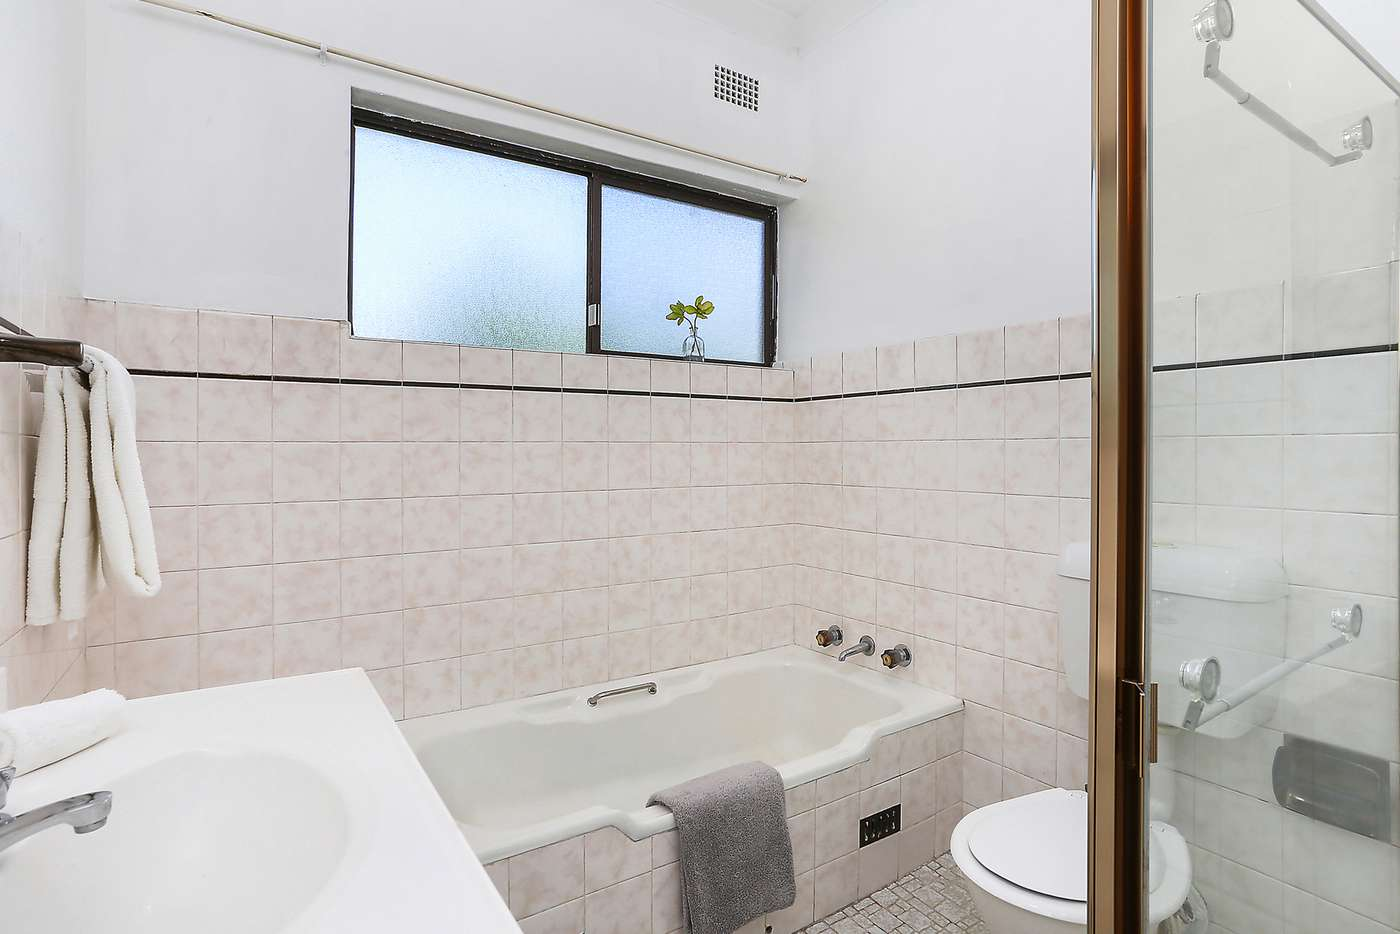 Sixth view of Homely apartment listing, 4/7 Rossi Street, South Hurstville NSW 2221